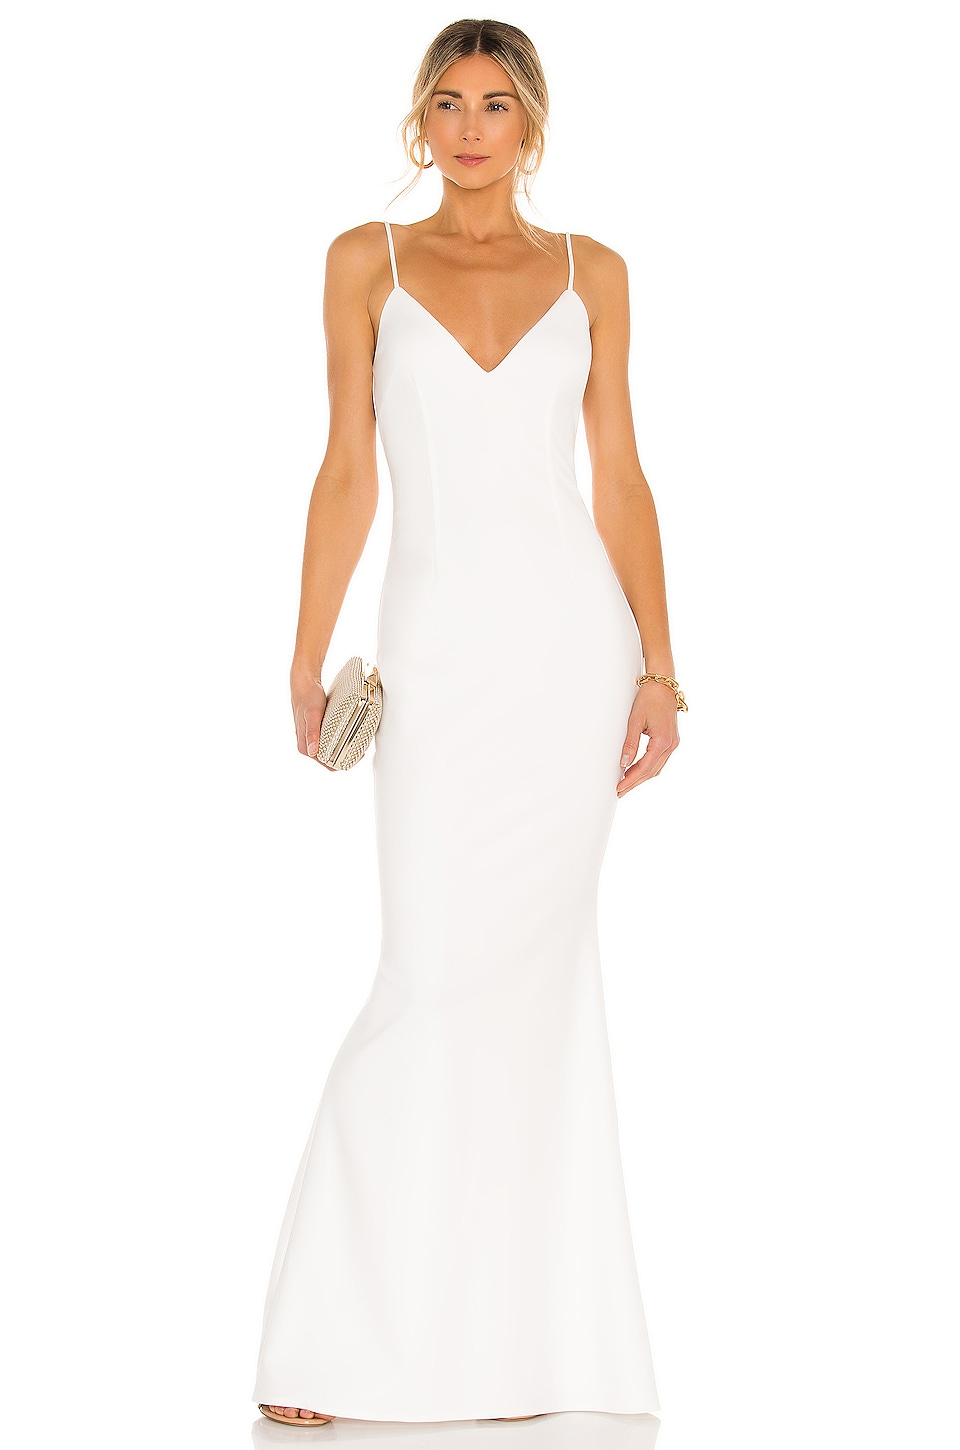 Katie May Bambina Gown in Ivory